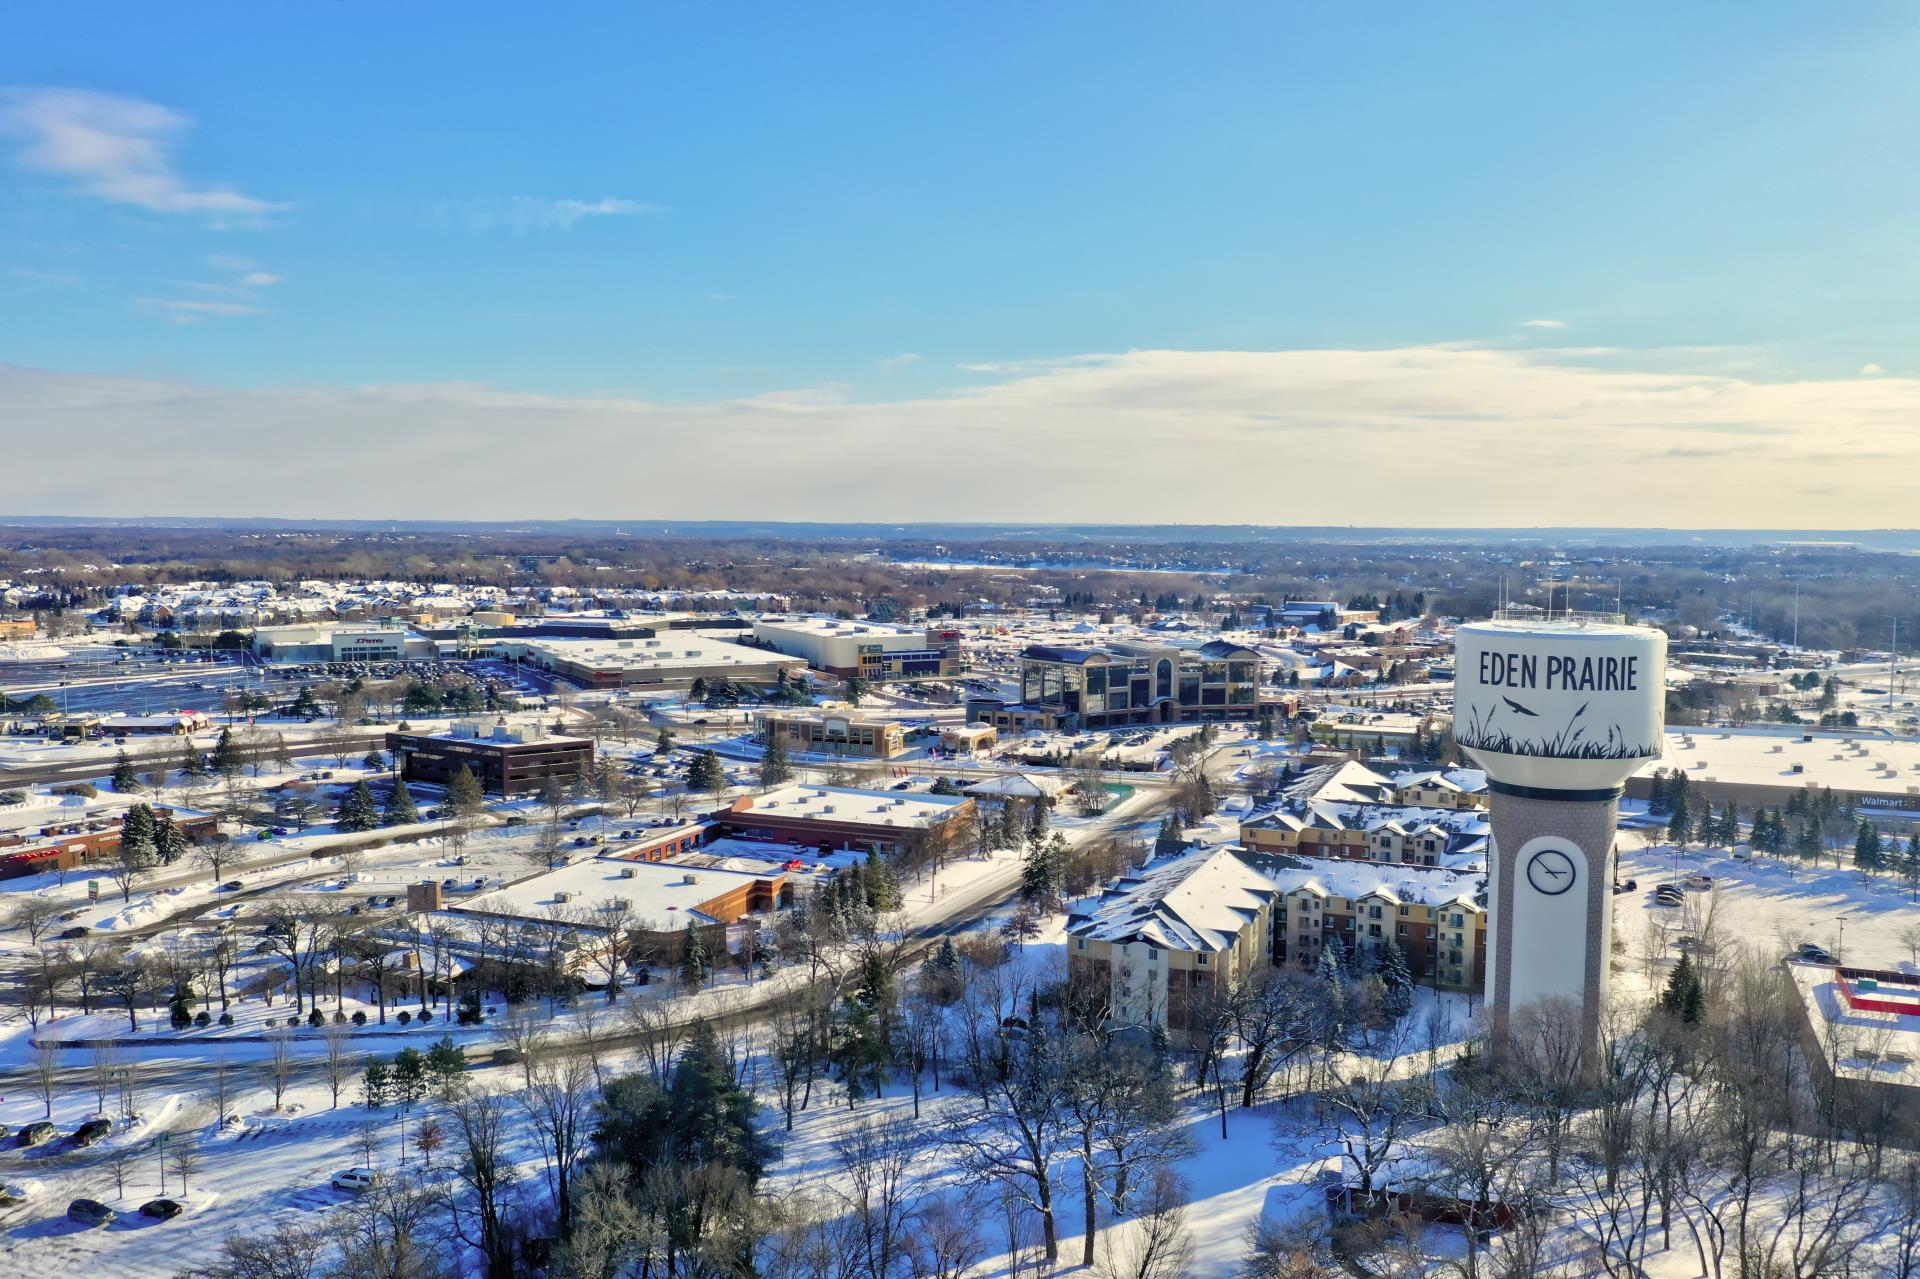 Eden Prairie Aerial View with Water Tower